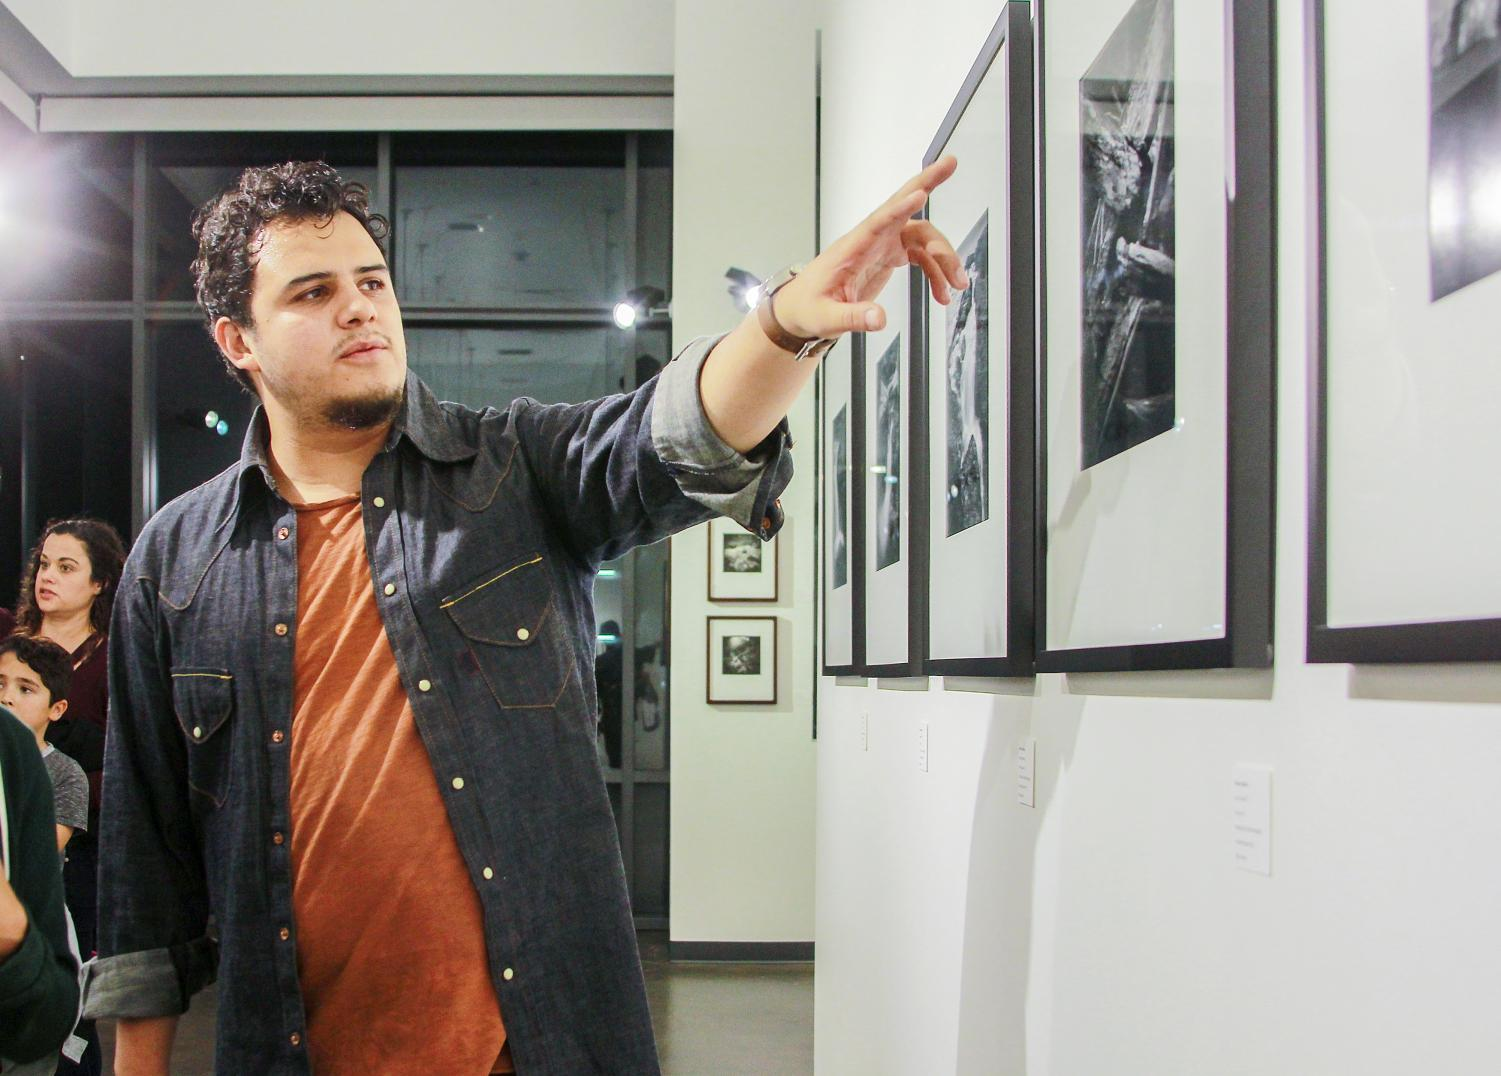 Photography student and exhibition curator Hector Valdivia explains his process in creating five prints for the new show in the Luxe Gallery at San Diego City College, Nov. 9.